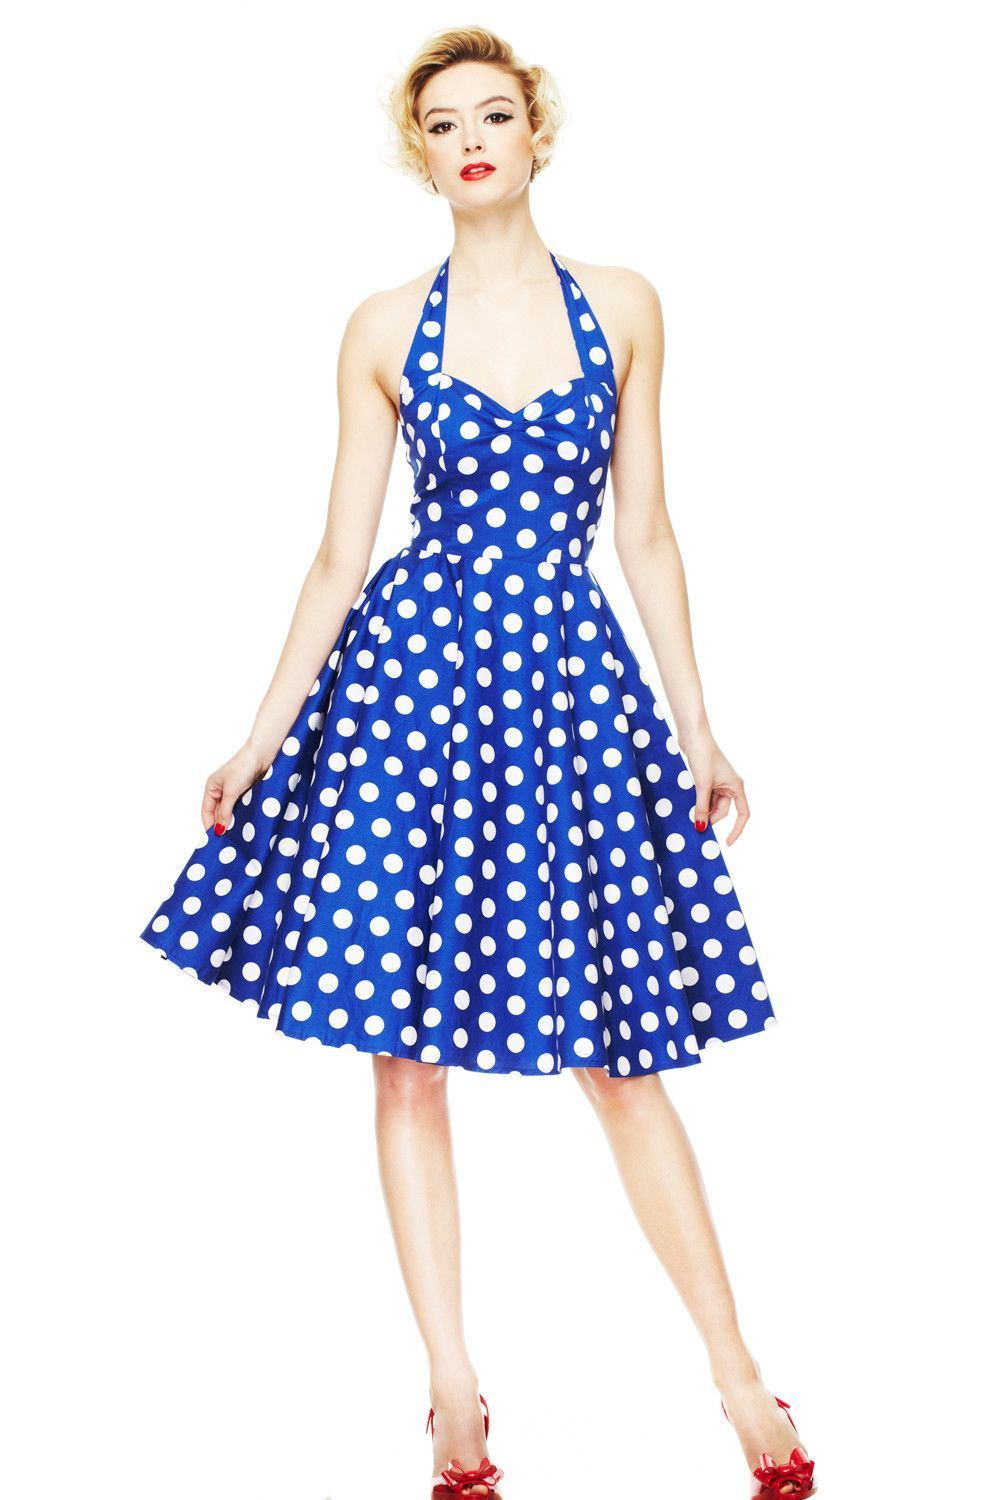 c4697eef45b223 Hell Bunny 60's Blue and White Polka Dot Halter Flare Party Dress in ...